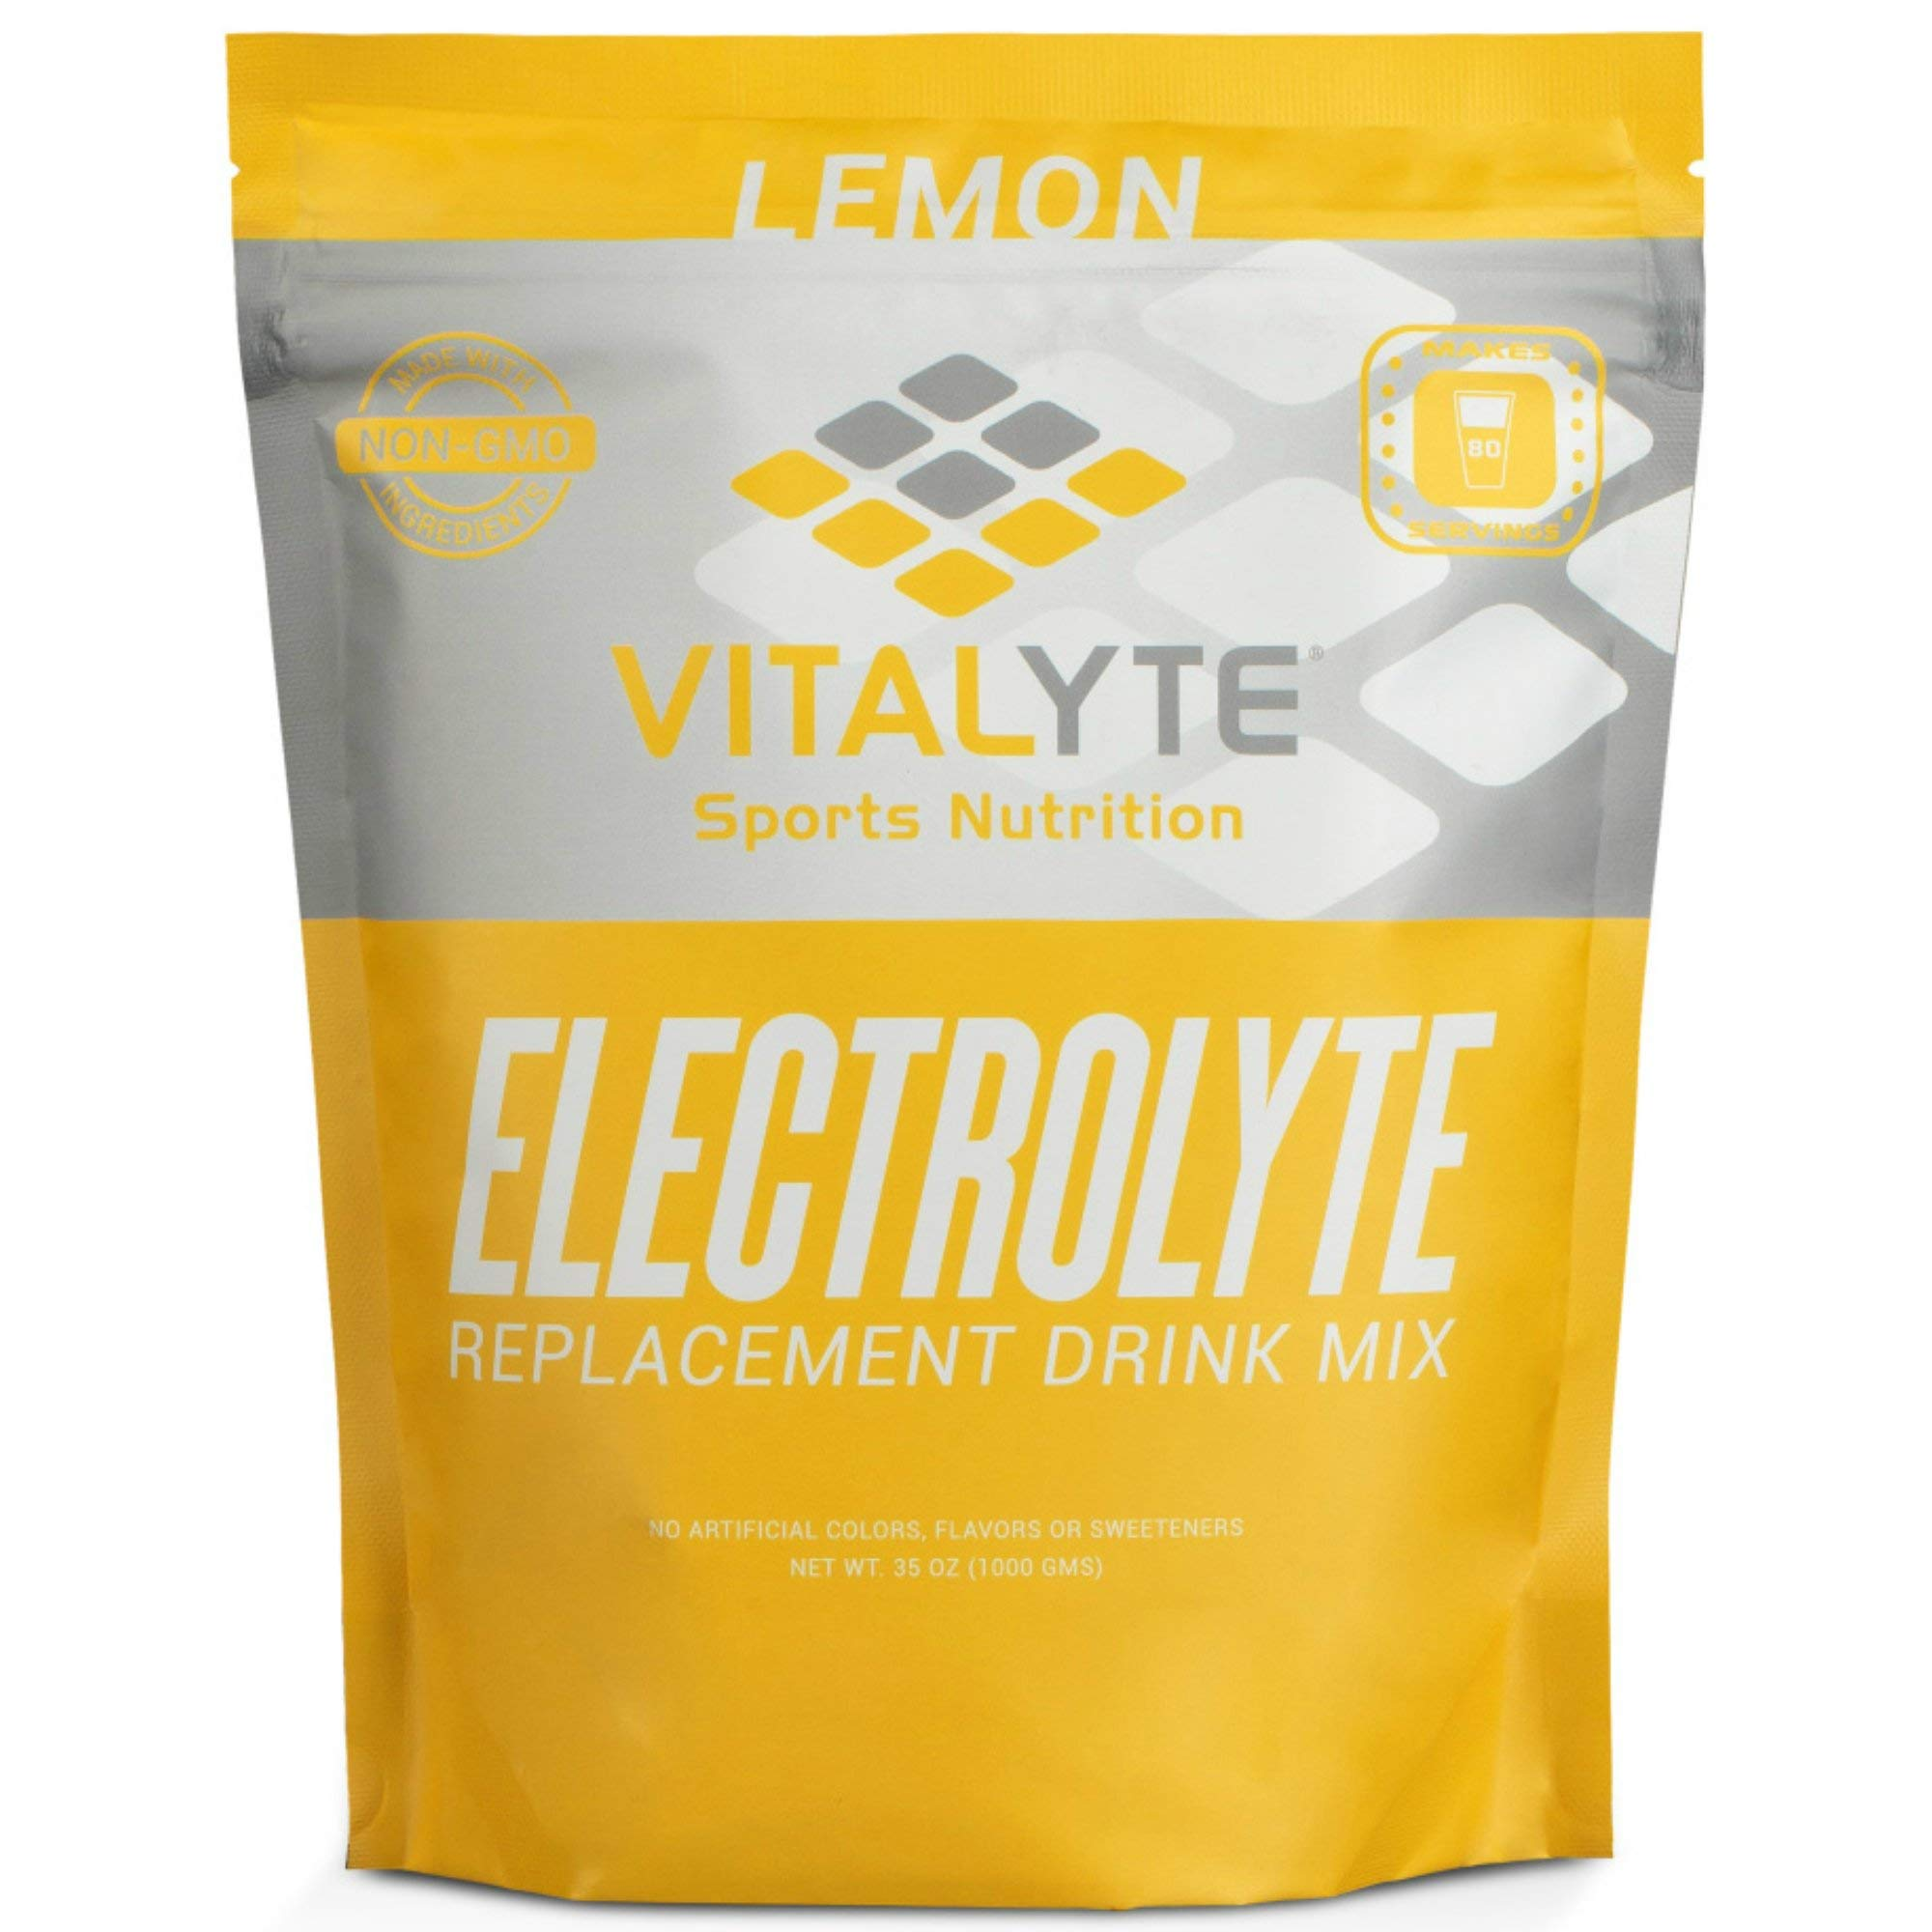 Vitalyte Natural Electrolyte Powder Drink Mix, Gluten Free, 40 2 Cup Servings Per Container (Lemon-Pouch)